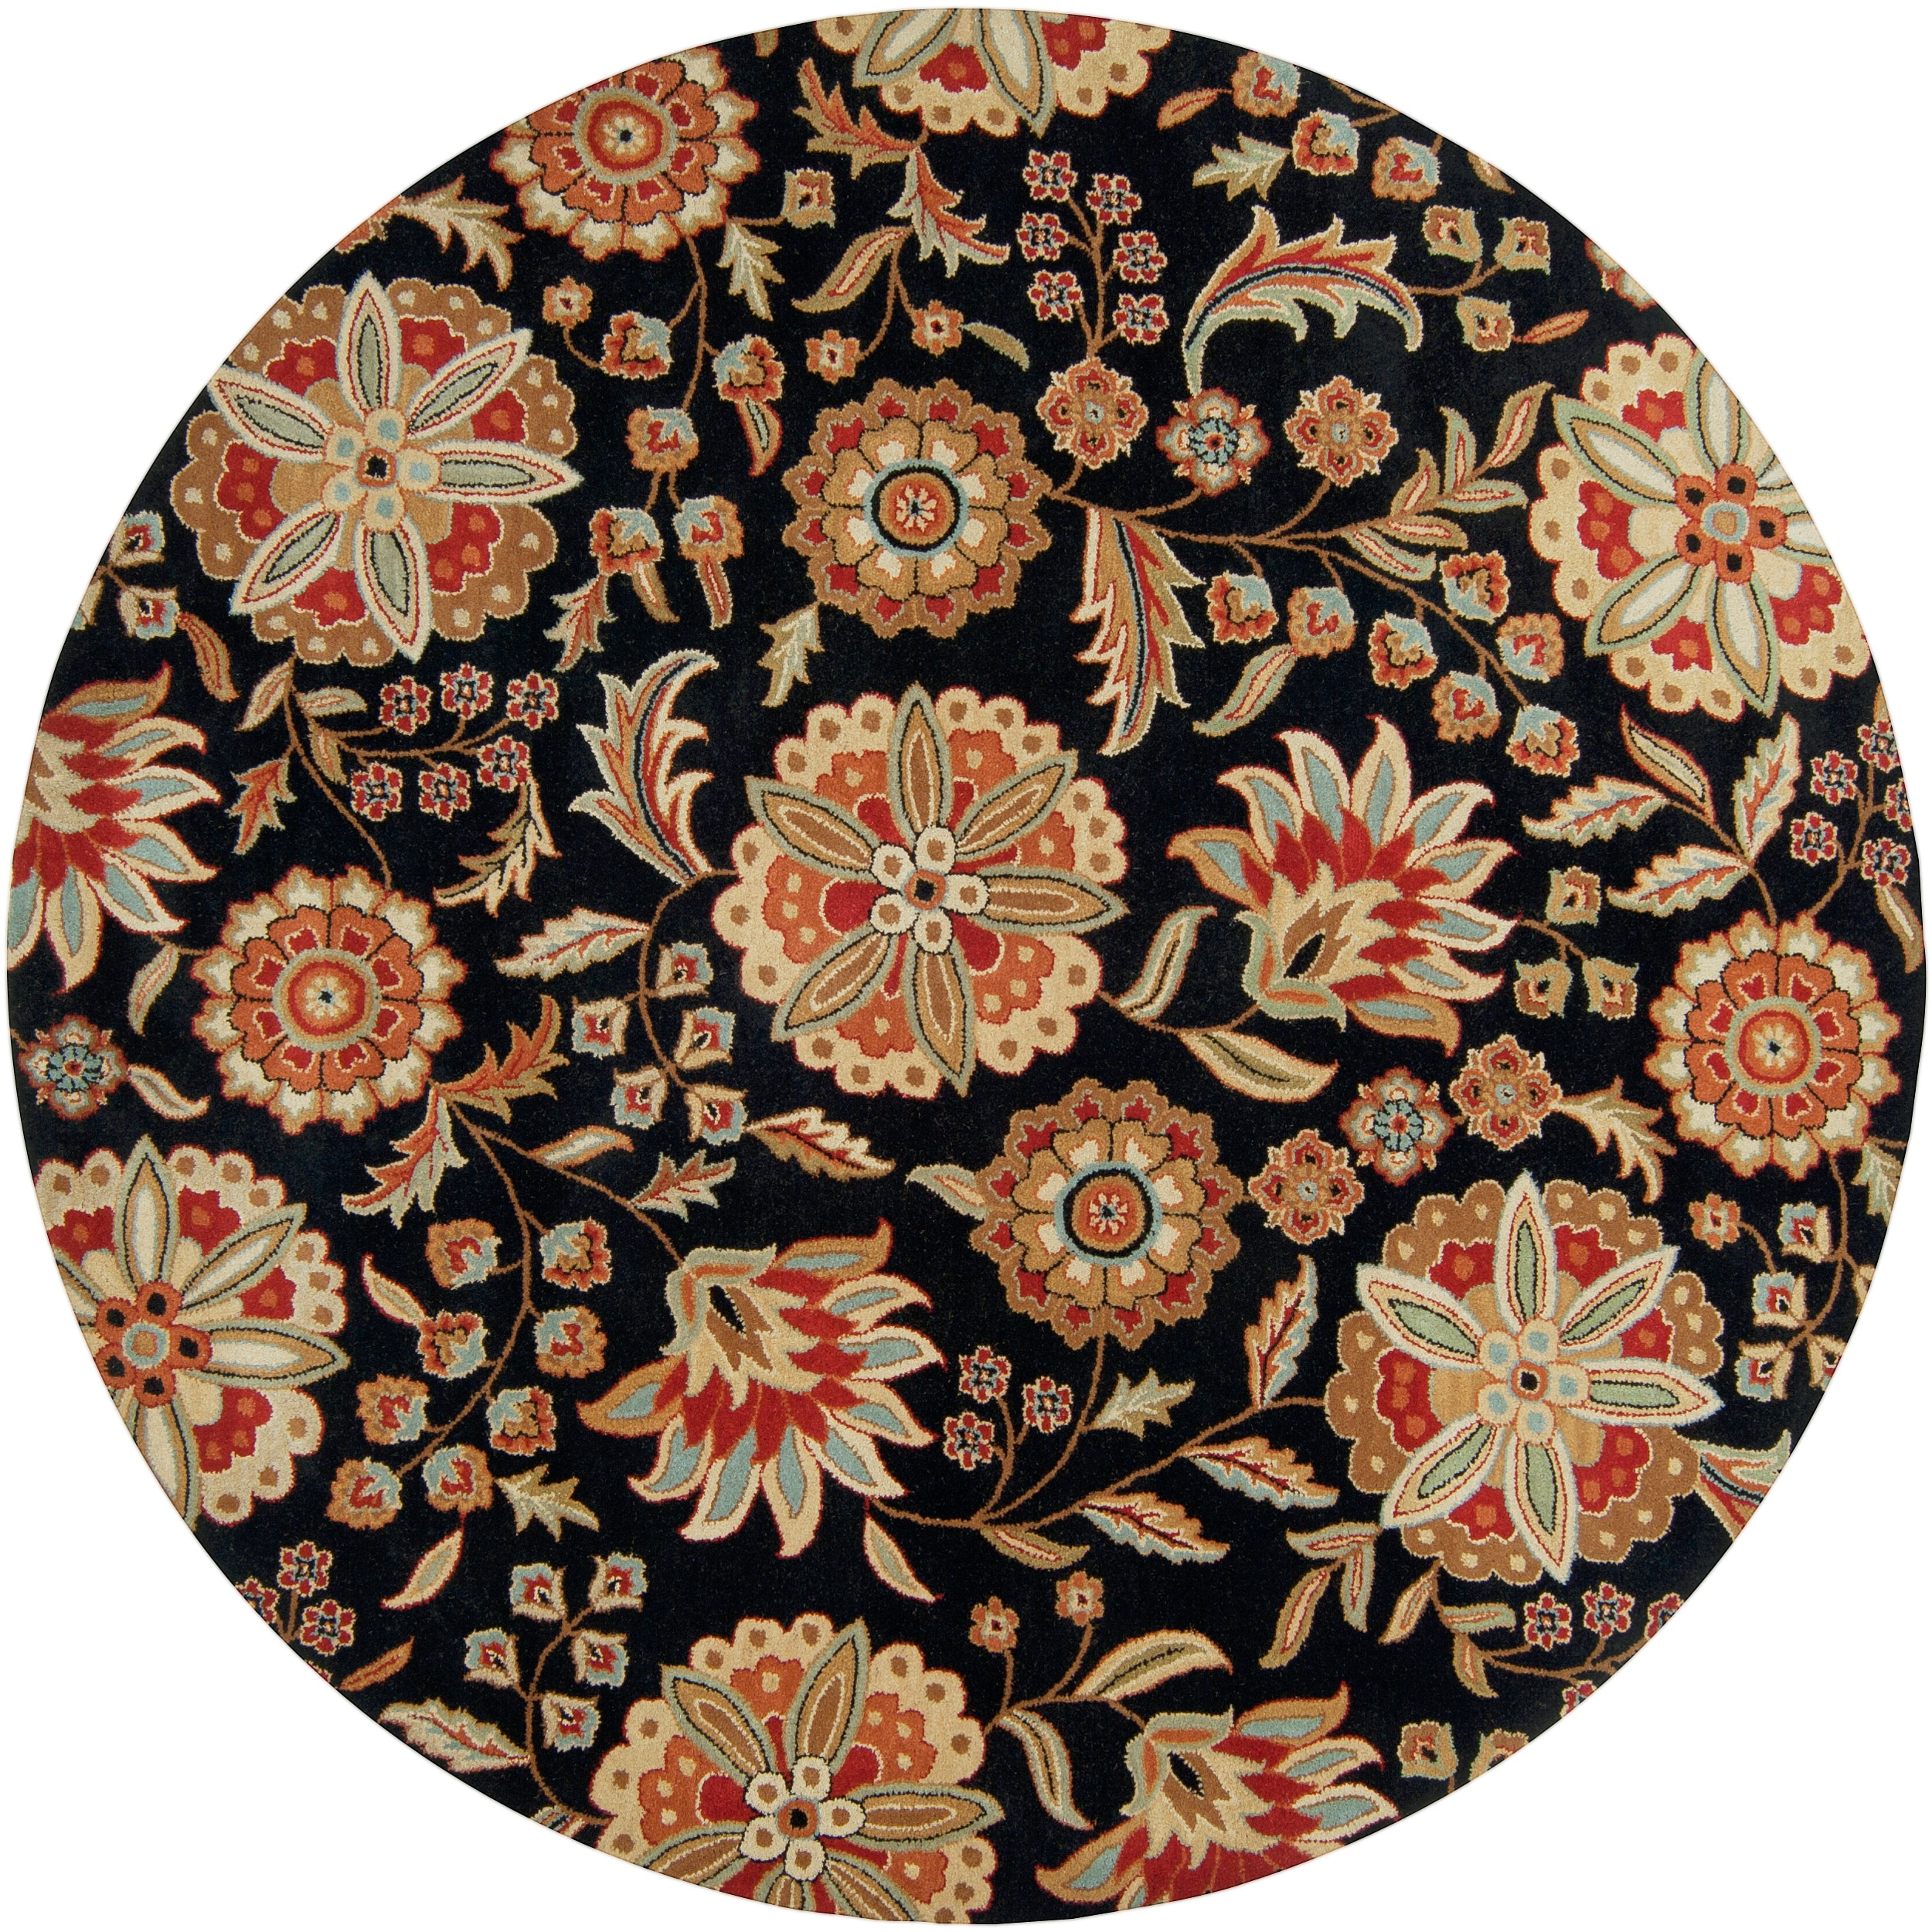 Hand-tufted Black Treasures Wool Rug (8' Round) - Thumbnail 0